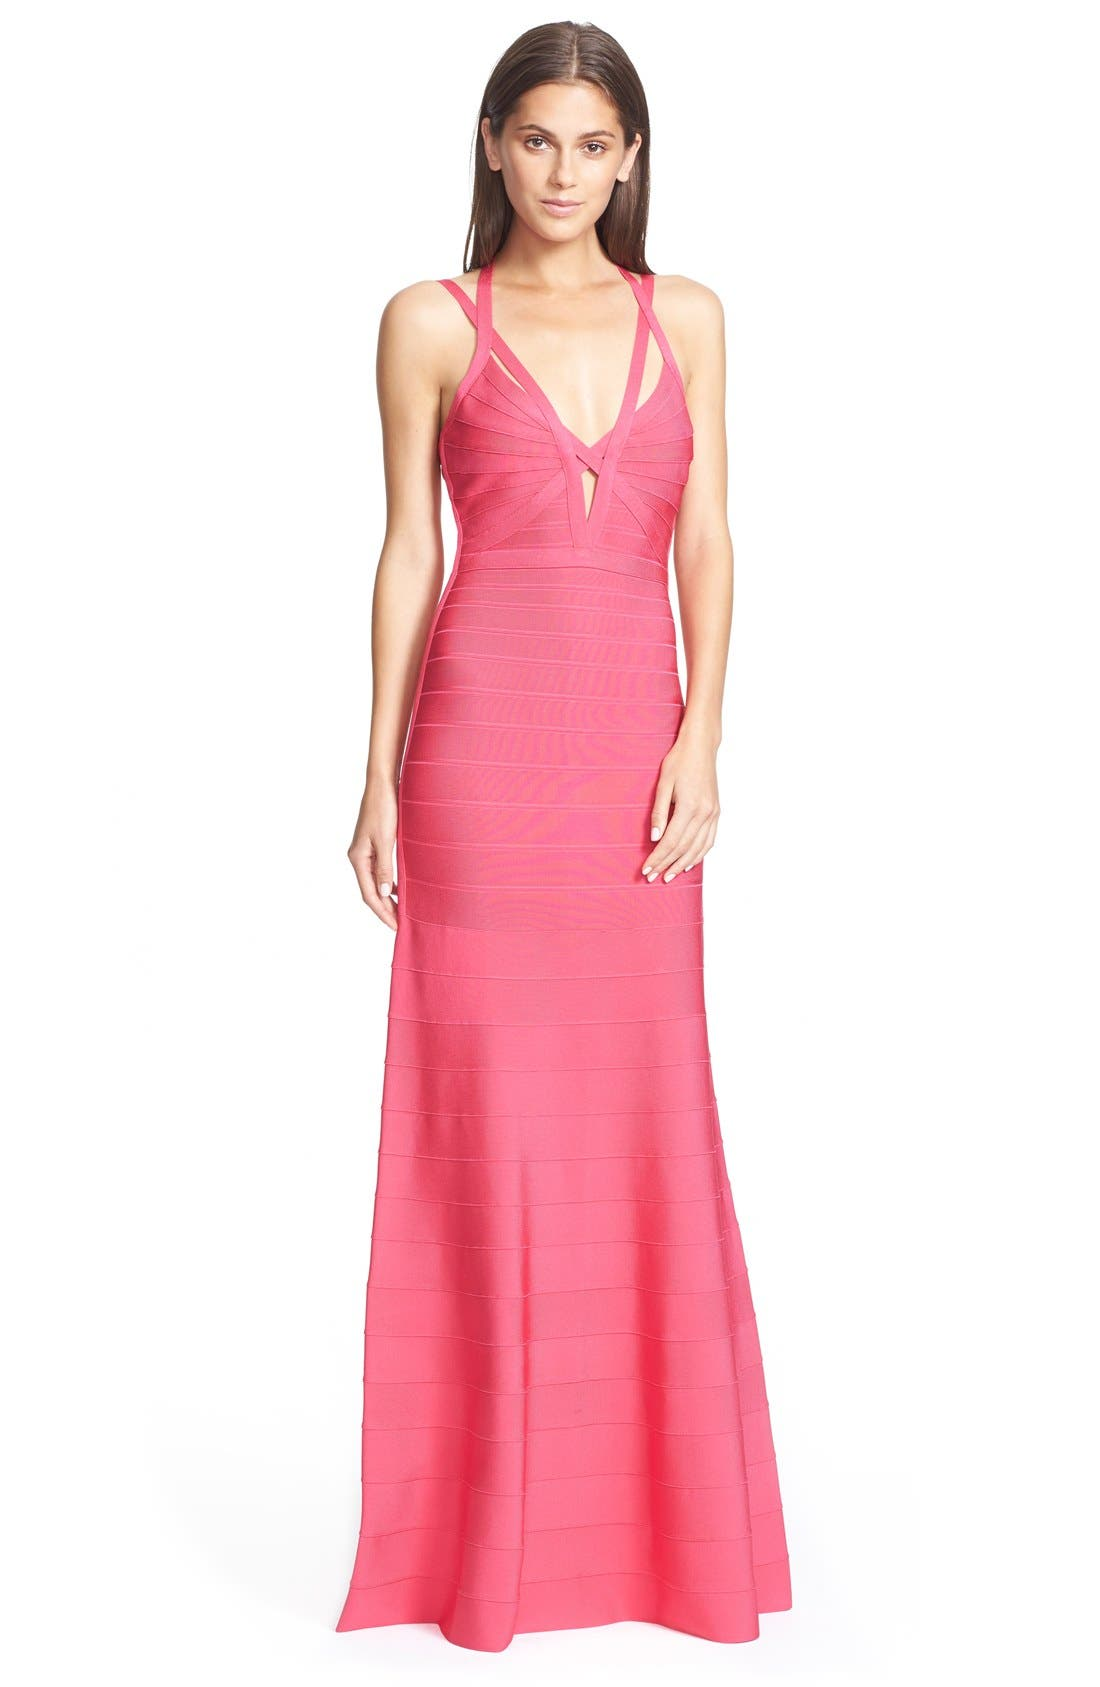 Alternate Image 1 Selected - Herve Leger 'Adalet' Mermaid Bandage Gown